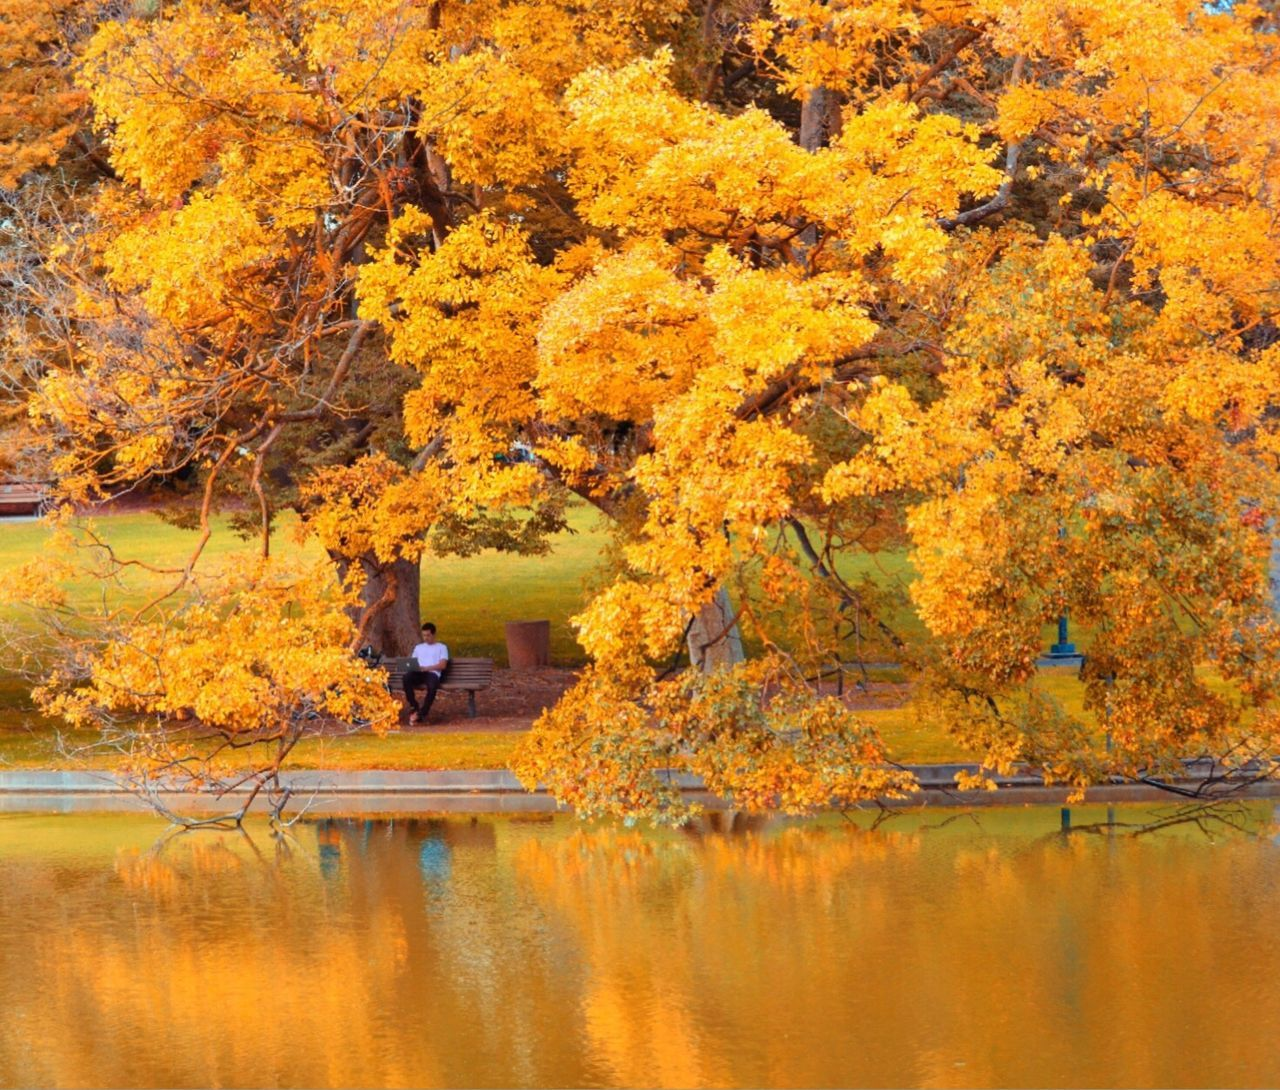 autumn, change, leaf, maple tree, tree, nature, beauty in nature, reflection, orange color, lake, water, maple leaf, scenics, outdoors, forest, tranquil scene, day, tranquility, yellow, full length, deciduous tree, no people, branch